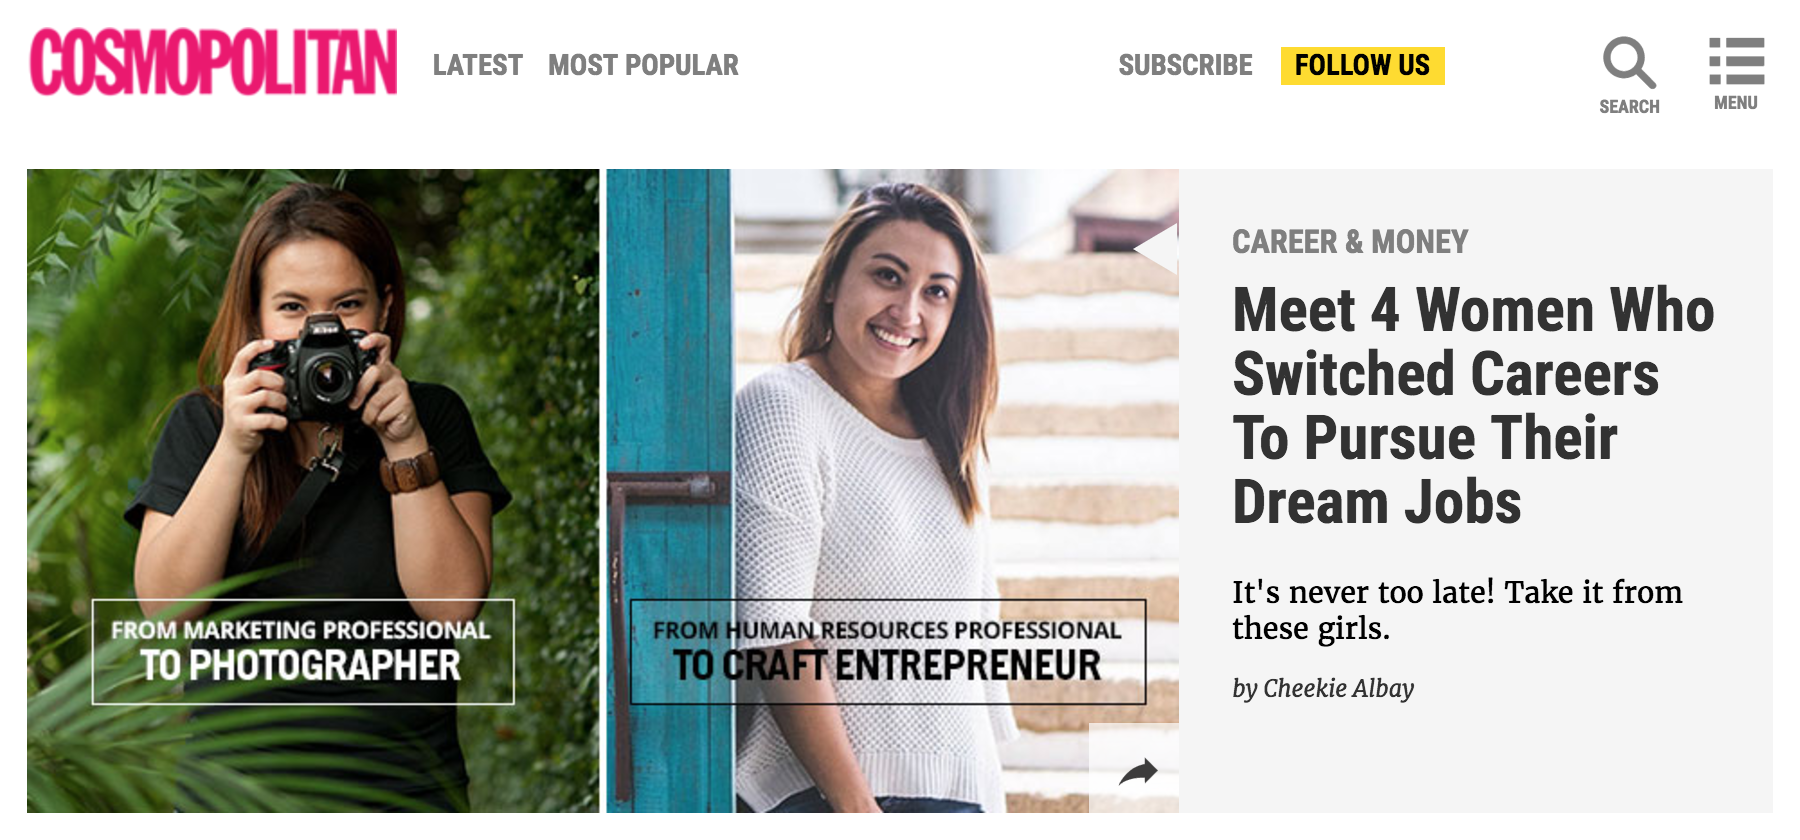 I Try DIY   Cosmo.ph: Meet 4 Women Who Switched Careers To Pursue Their Dream Jobs